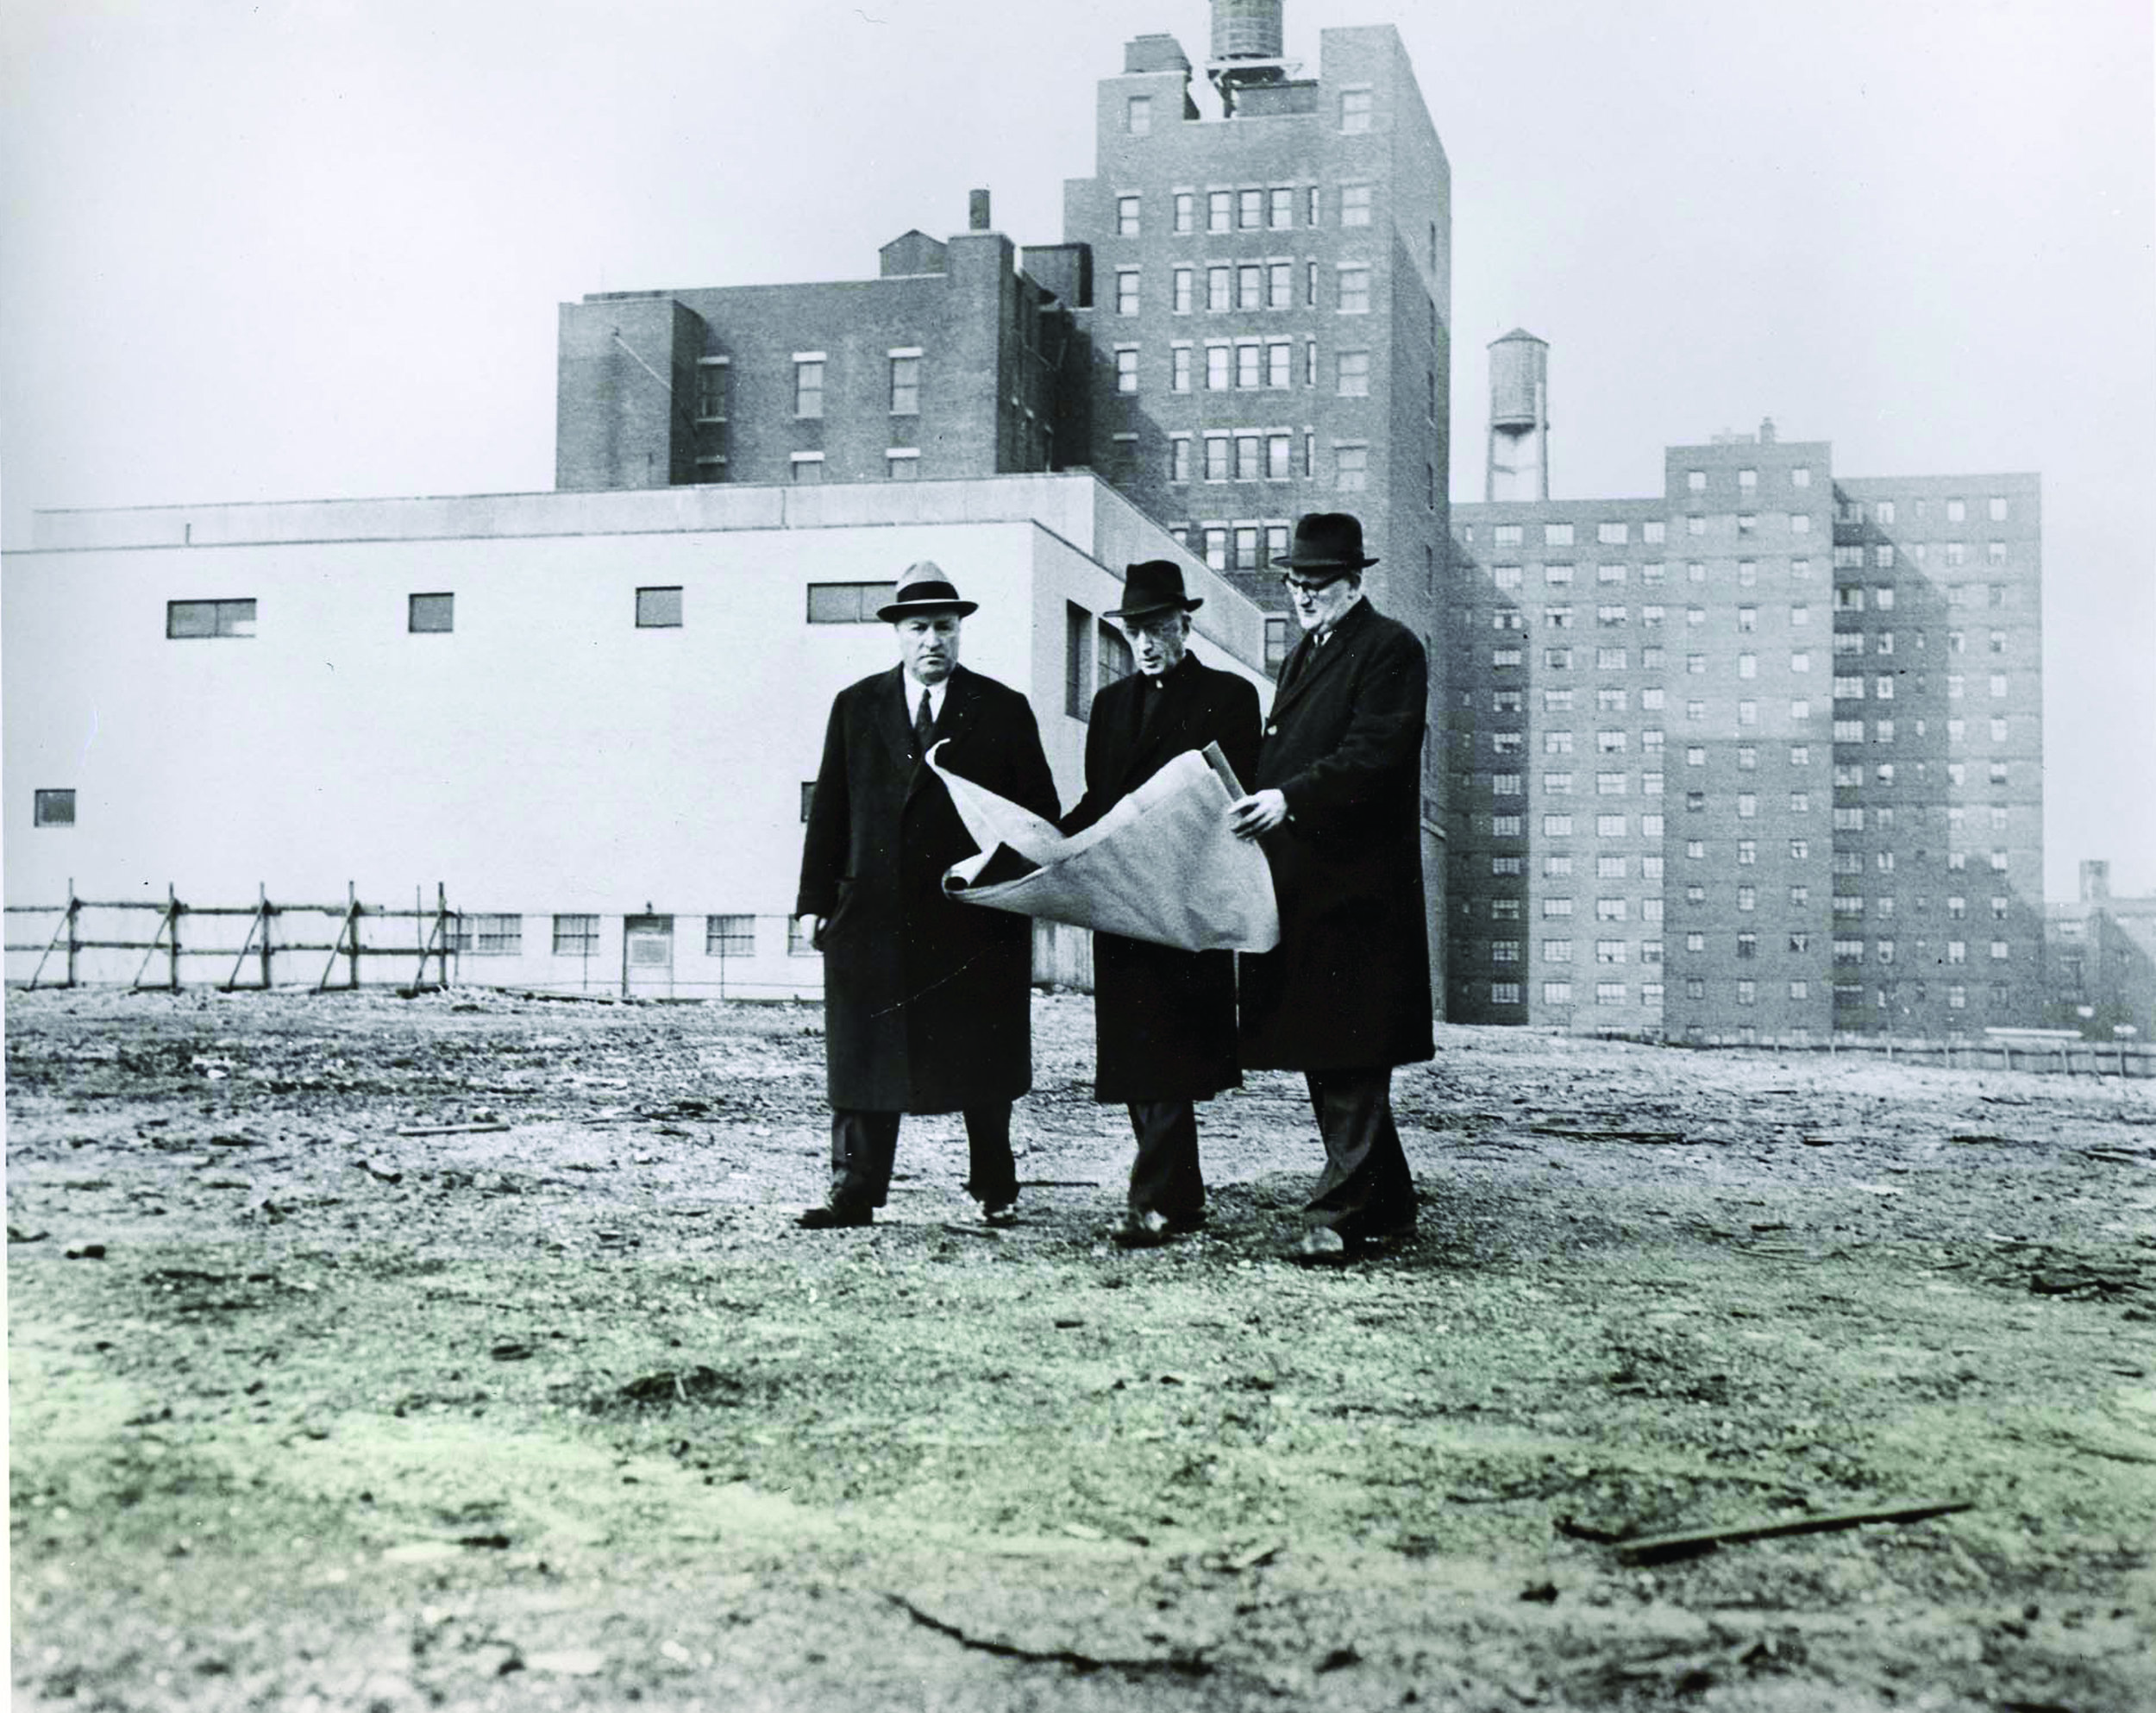 Fordham trustee Joseph A. Martino; Laurence J. McGinley, S.J., president of Fordham; and Fordham Law Dean William Hughes Mulligan at the site of the Lincoln Center campus, 1959.